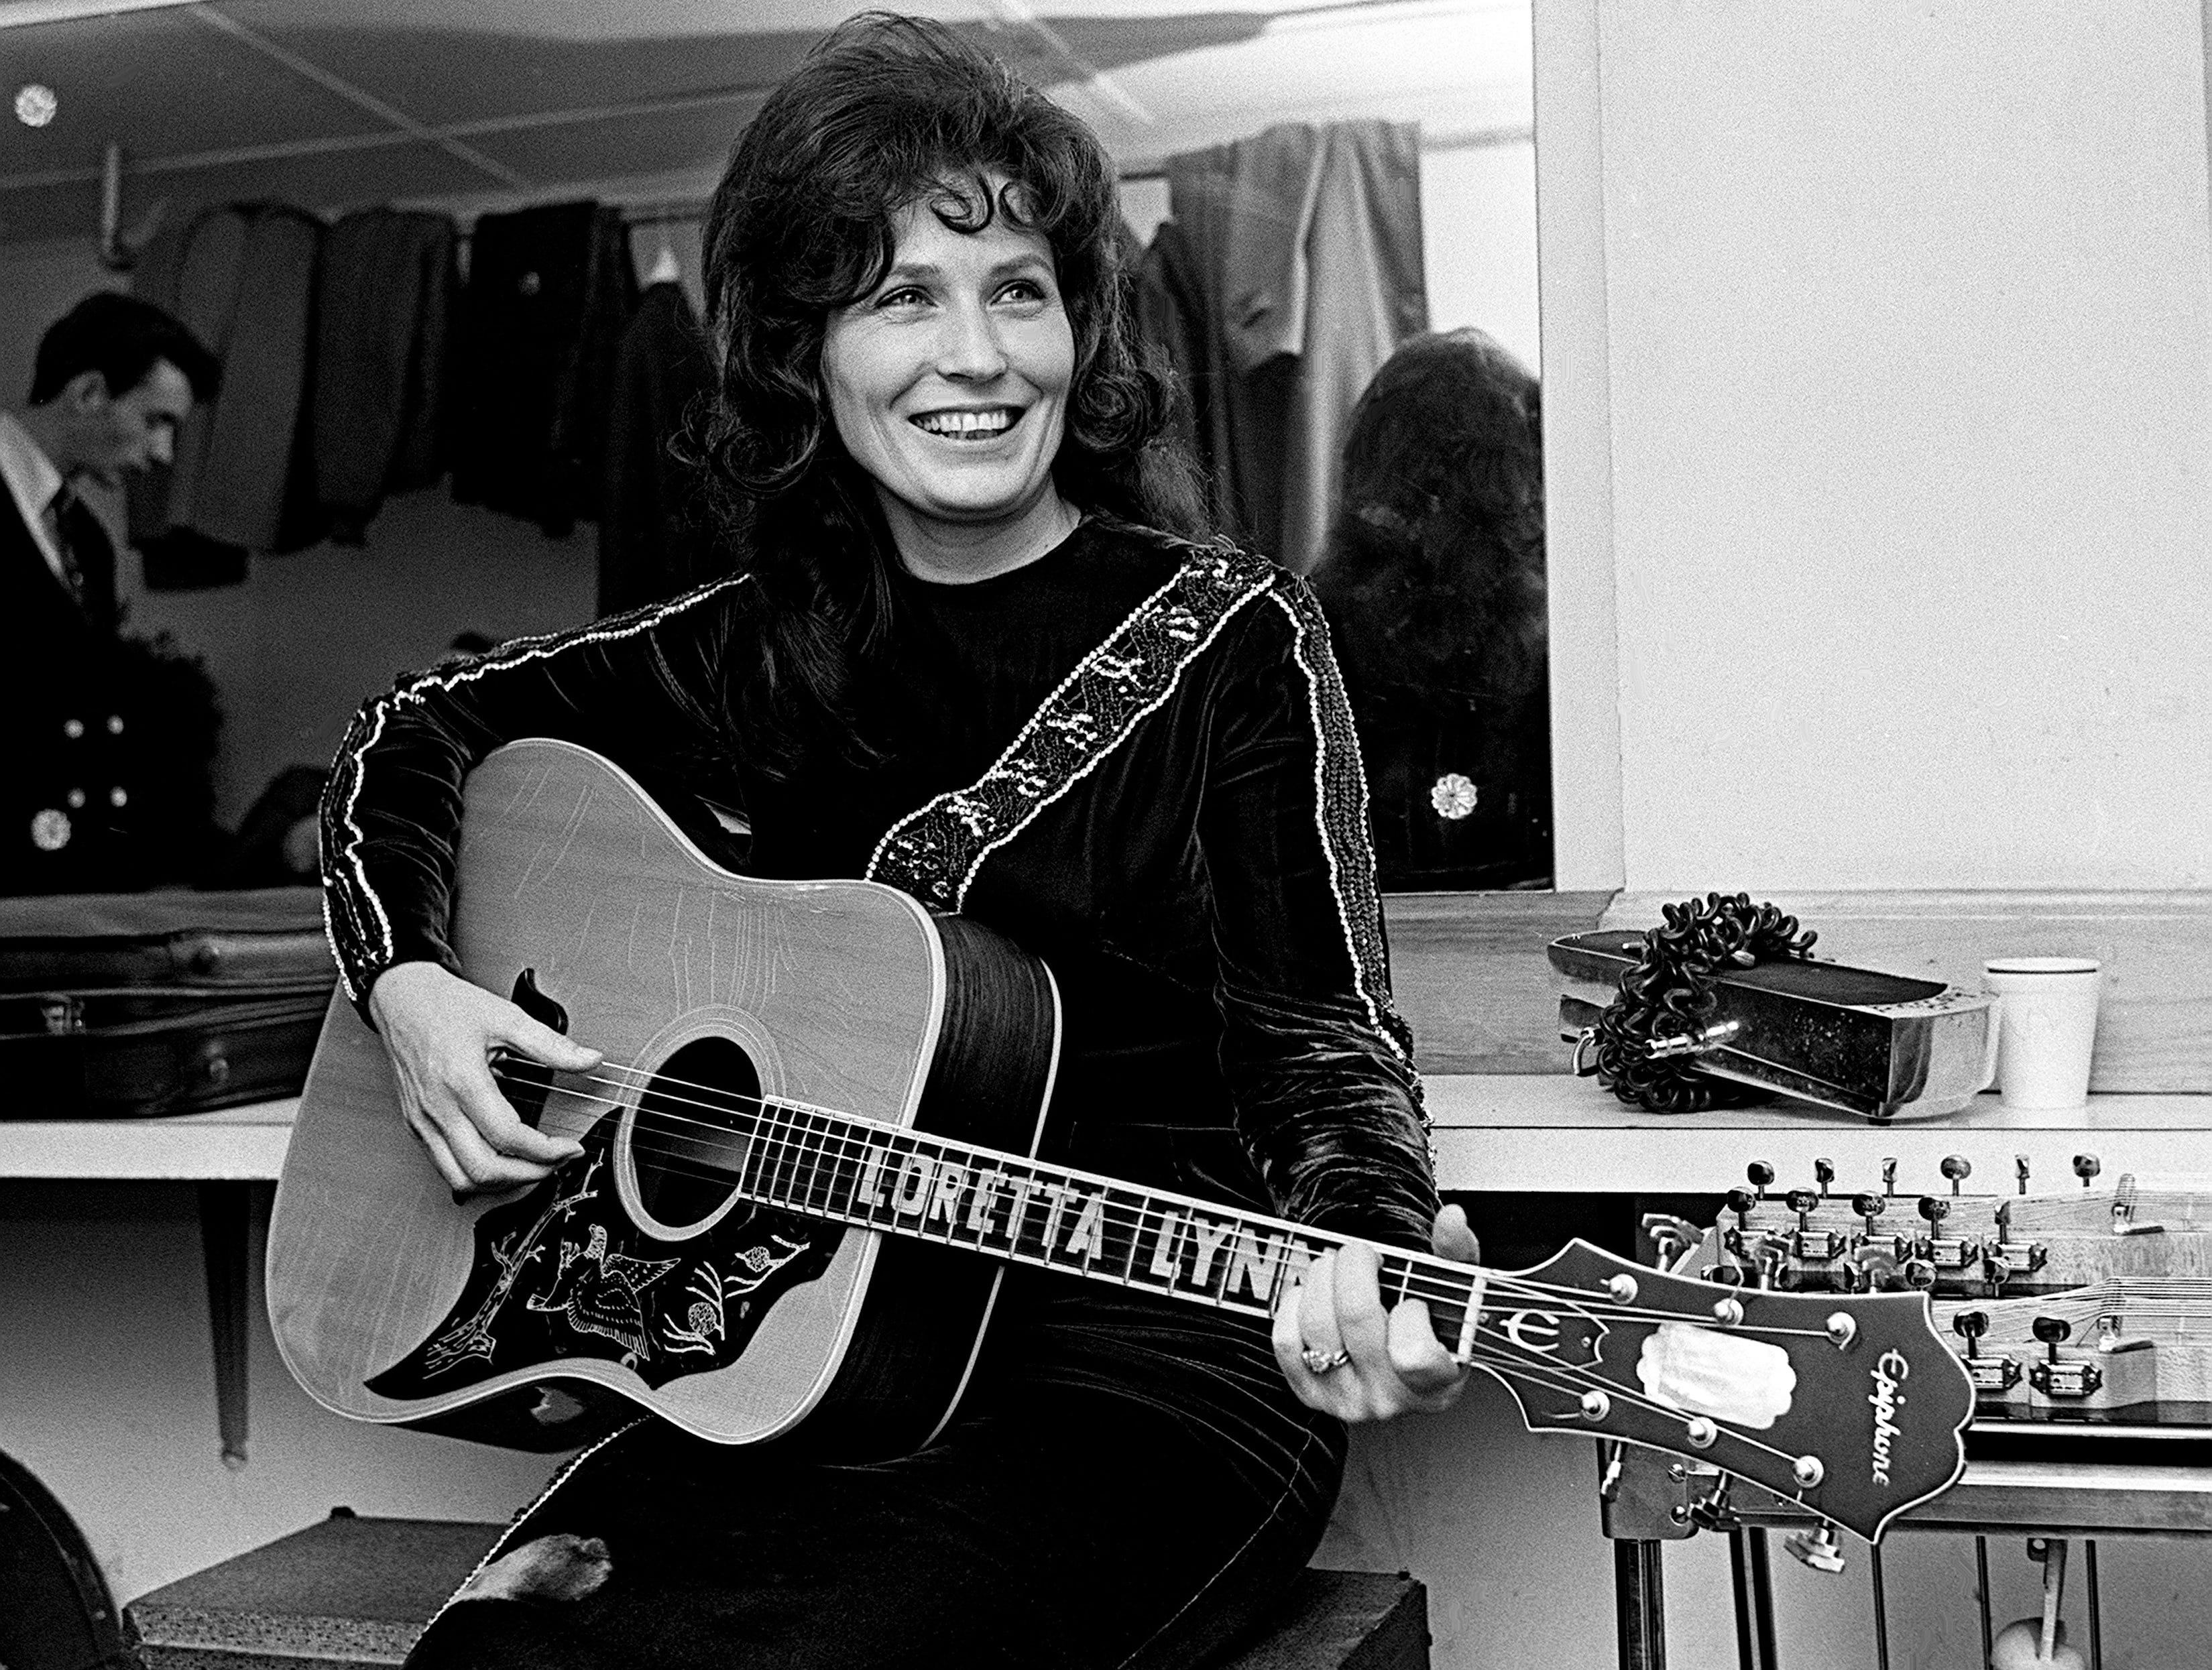 Loretta Lynn warms up in the dressing room at the Ryman Auditorium before going on stage for a Saturday night Grand Ole Opry show Dec. 10, 1966.